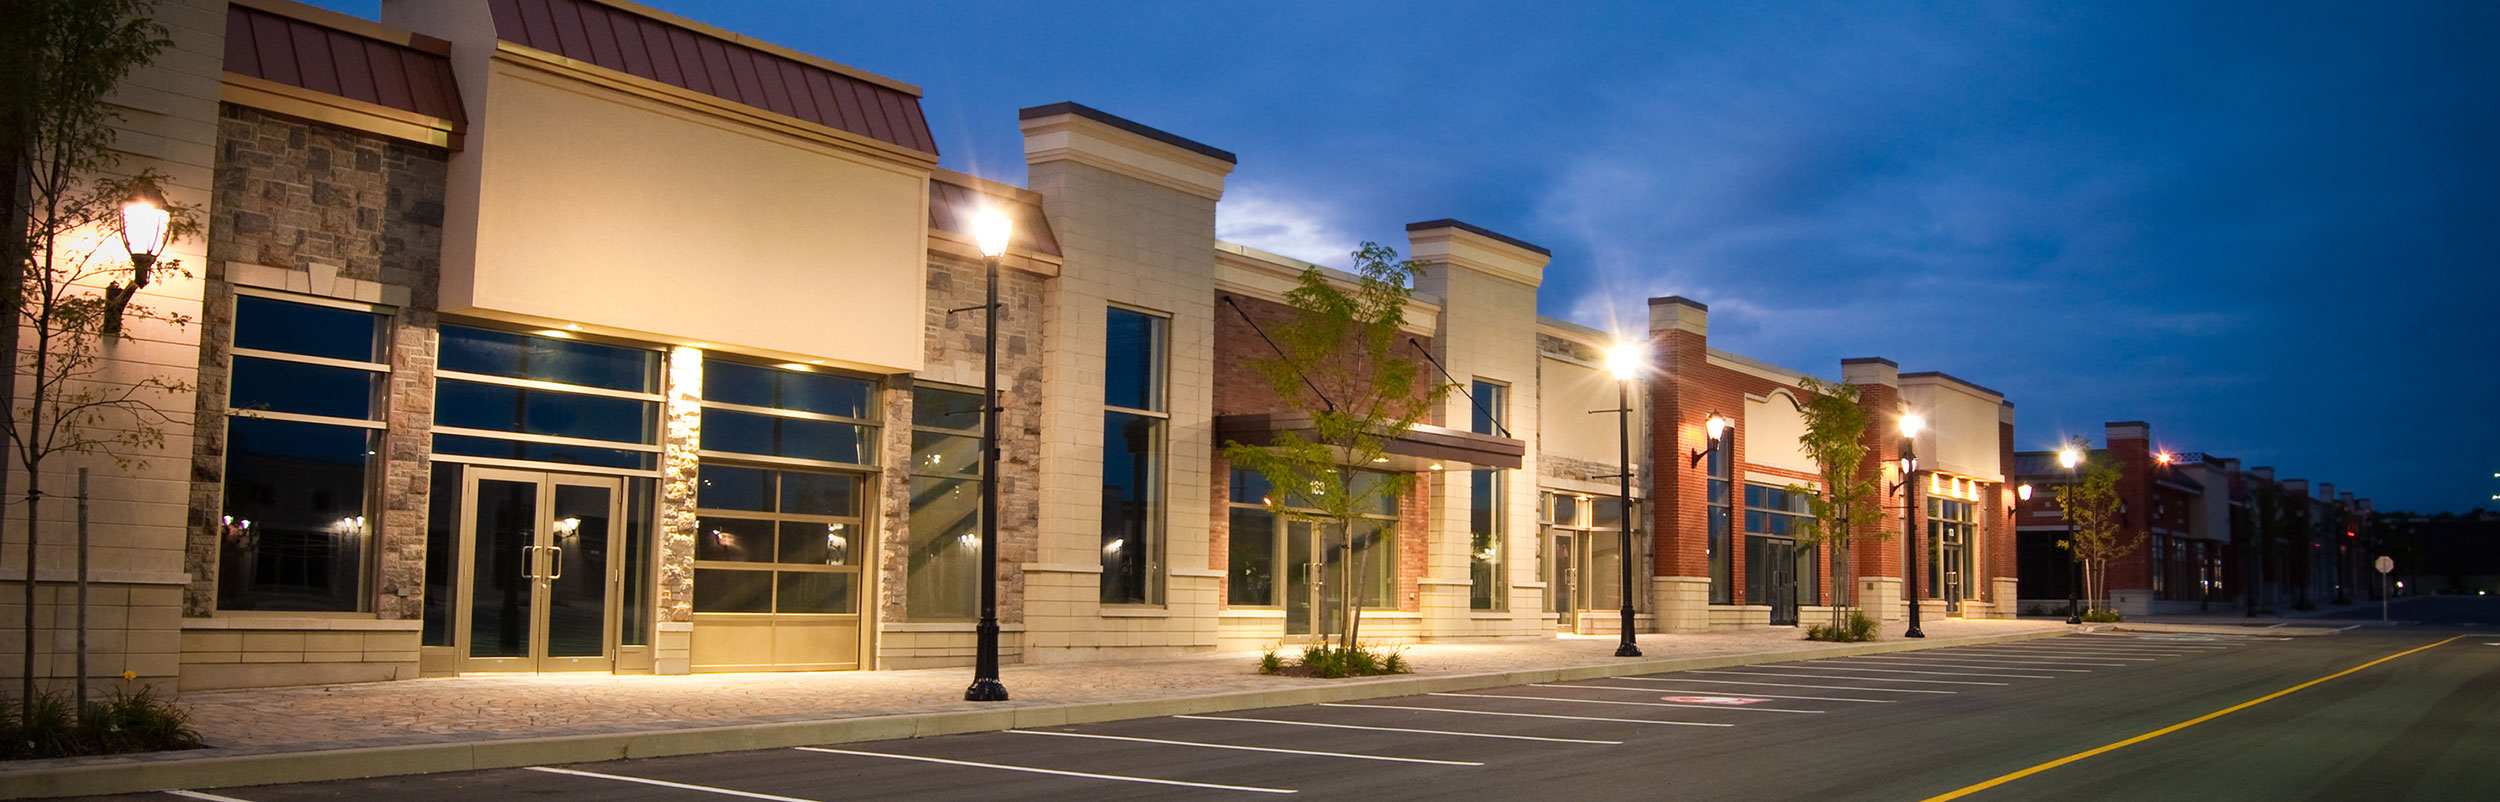 RETAIL REAL ESTATE INVESTMENTS